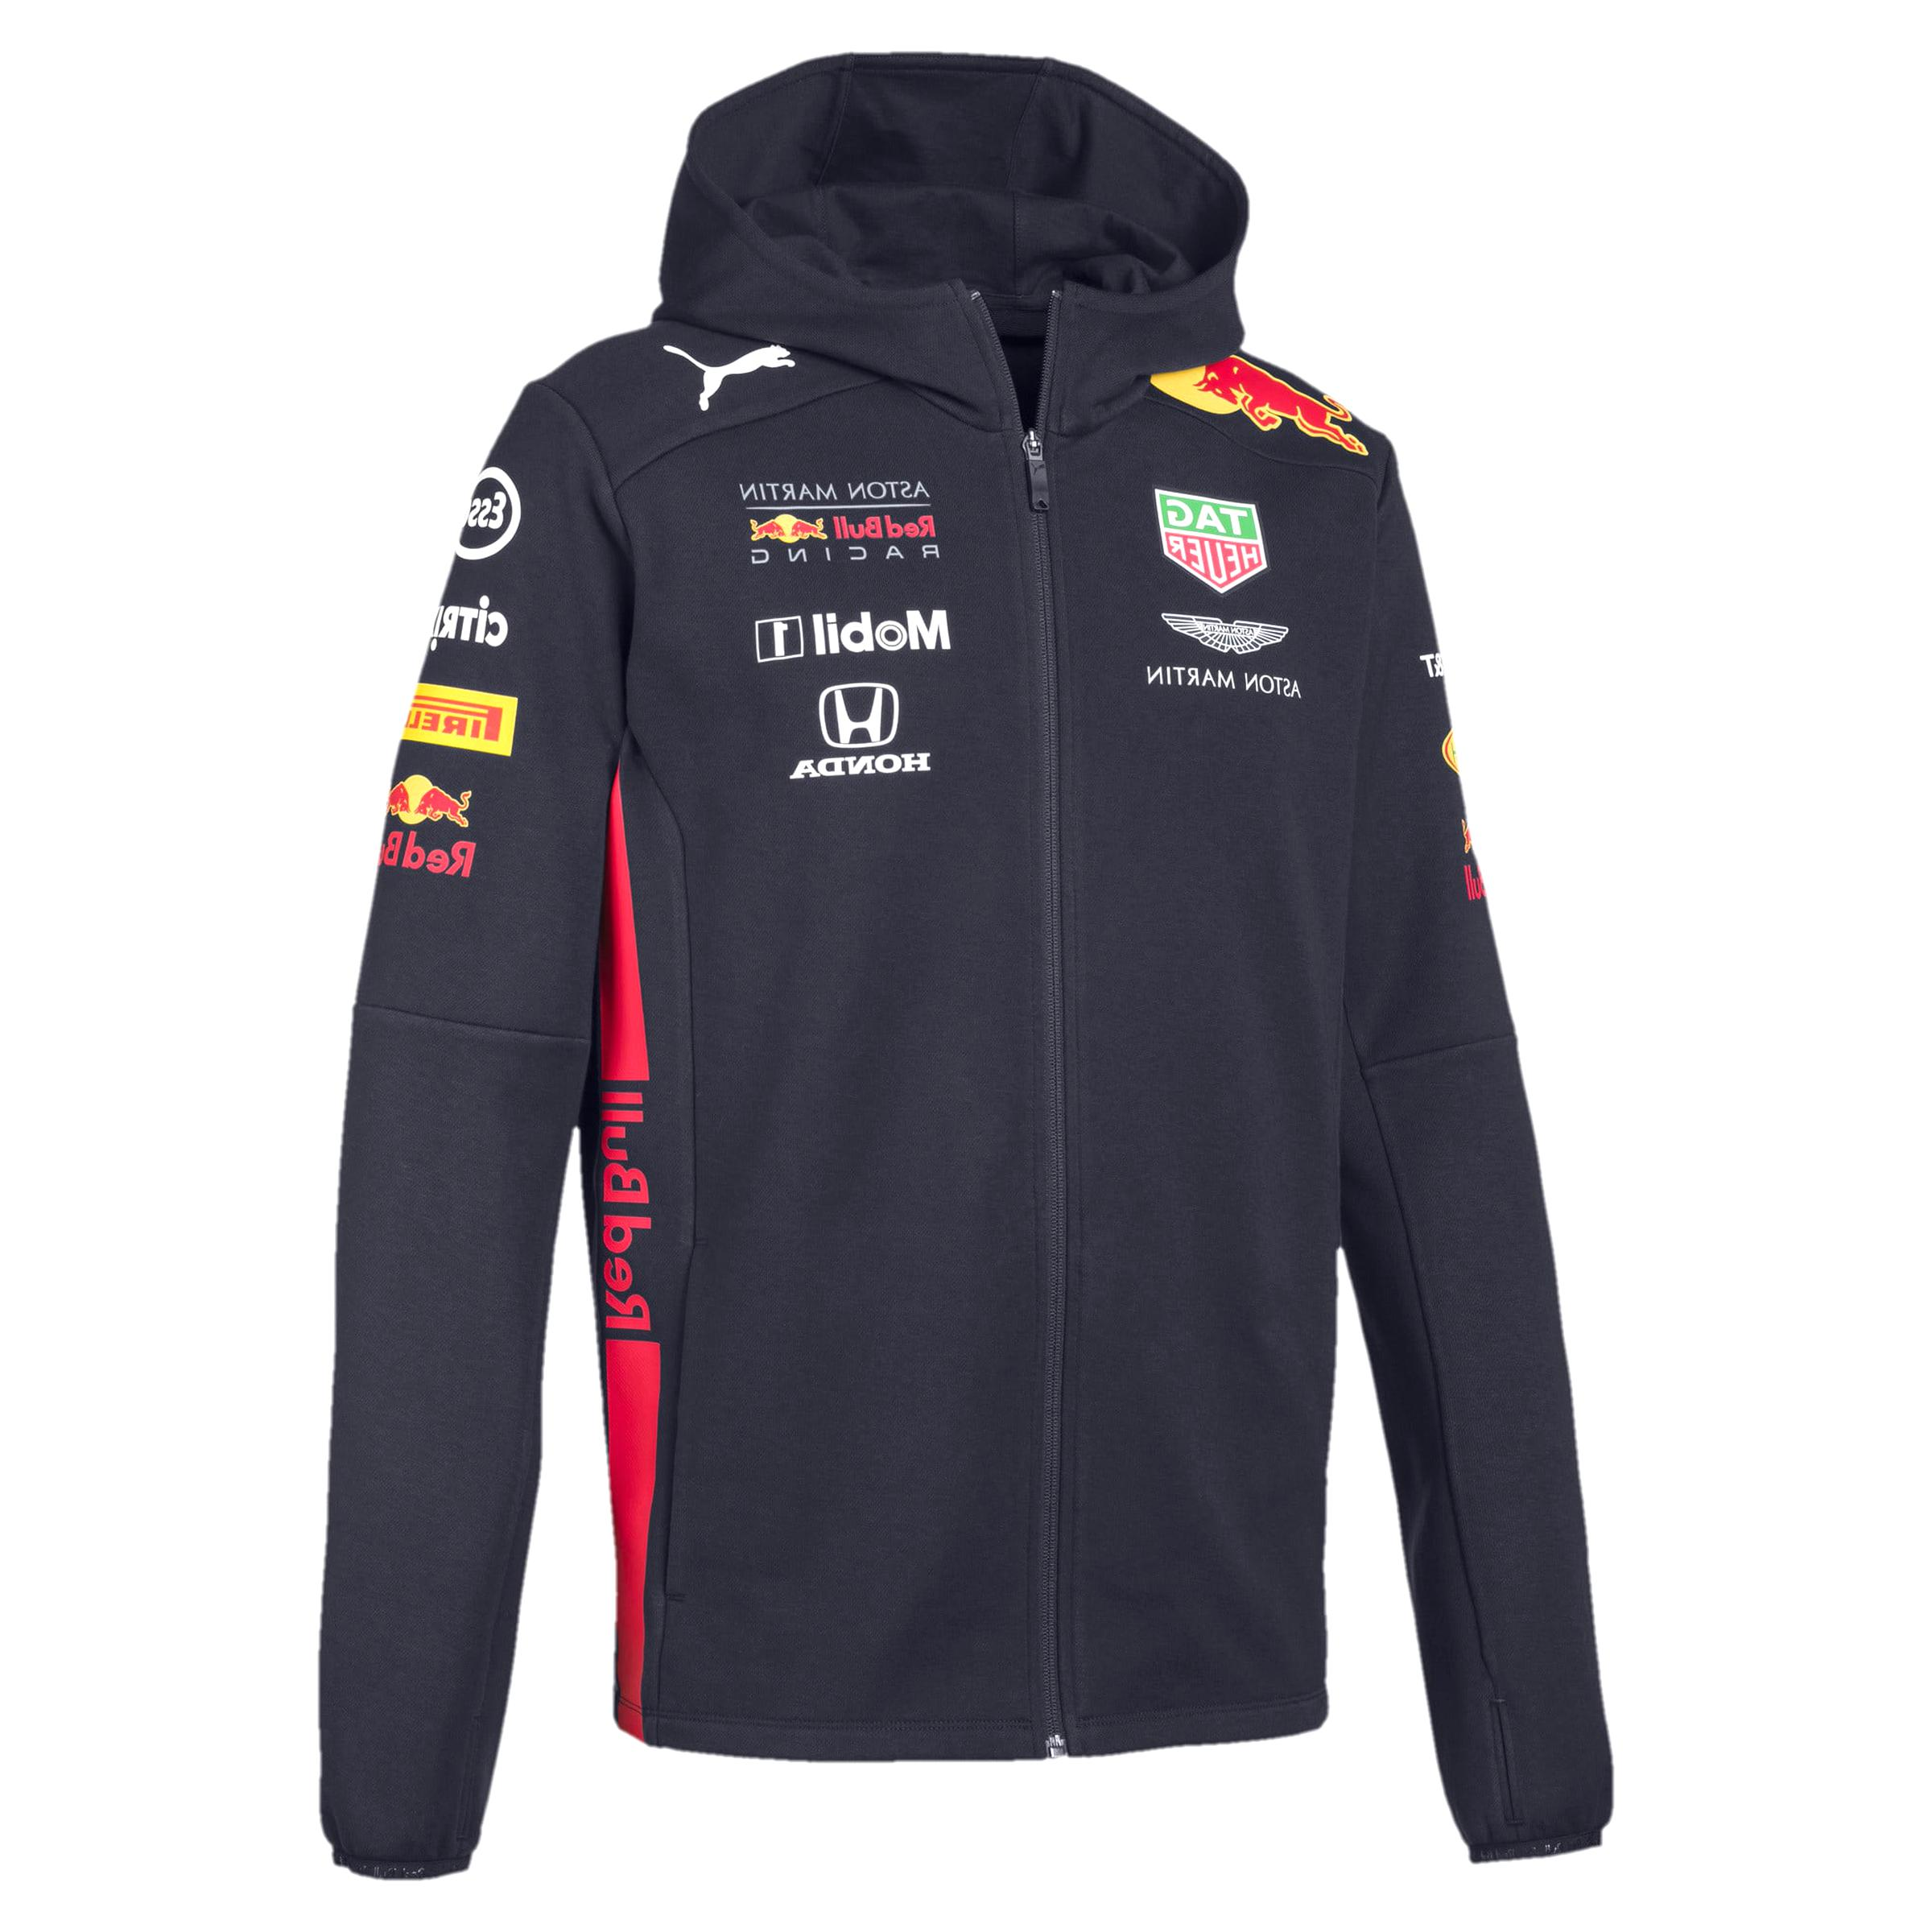 Red Bull Jacket For Sale In UK